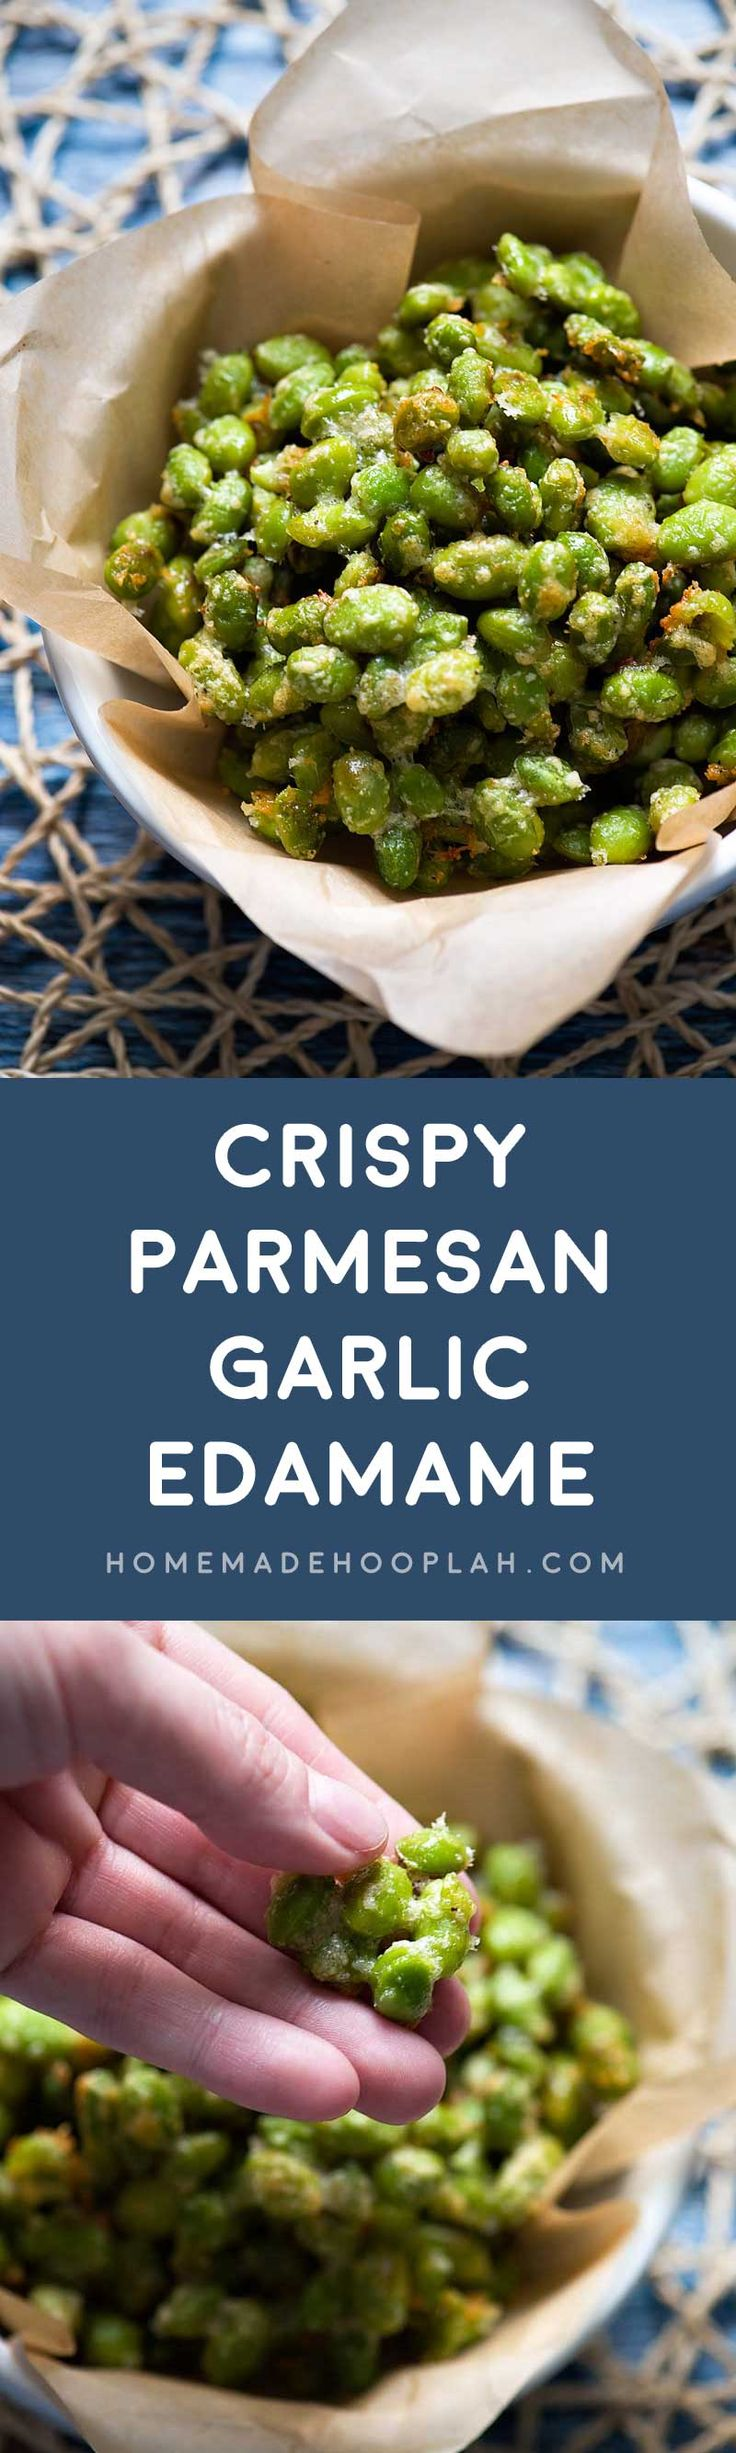 Crispy Parmesan Garlic Edamame! Baked in the oven, this edamame recipe is a tasty snack with only 123 calories! A filling food that will help you reach your weight goals.